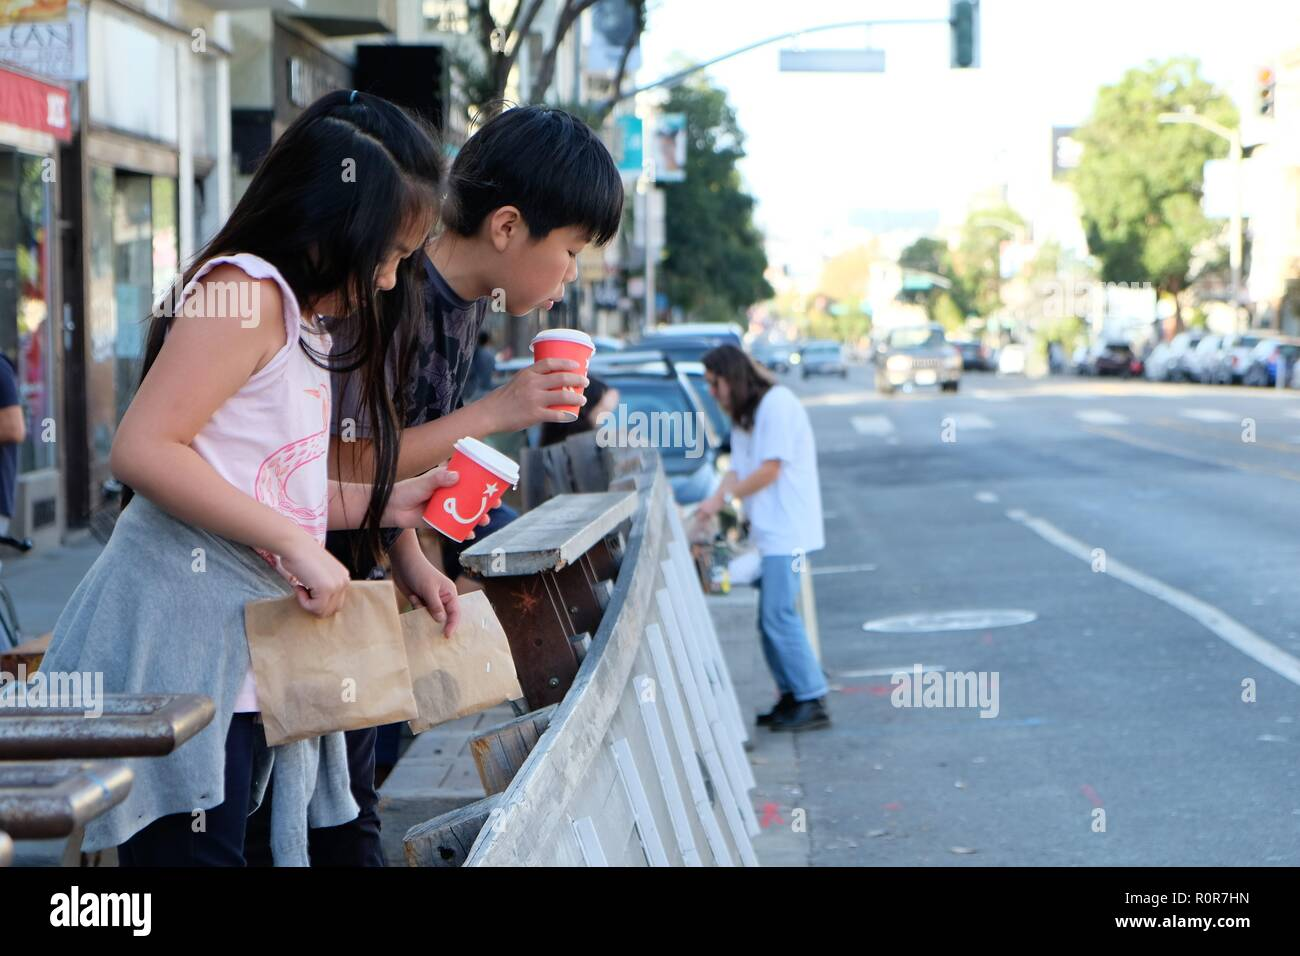 Two Asian children (a boy and a girl) stand at a sidewalk cafe overlooking a street blowing cool air on their hot chocolate; street scene. - Stock Image